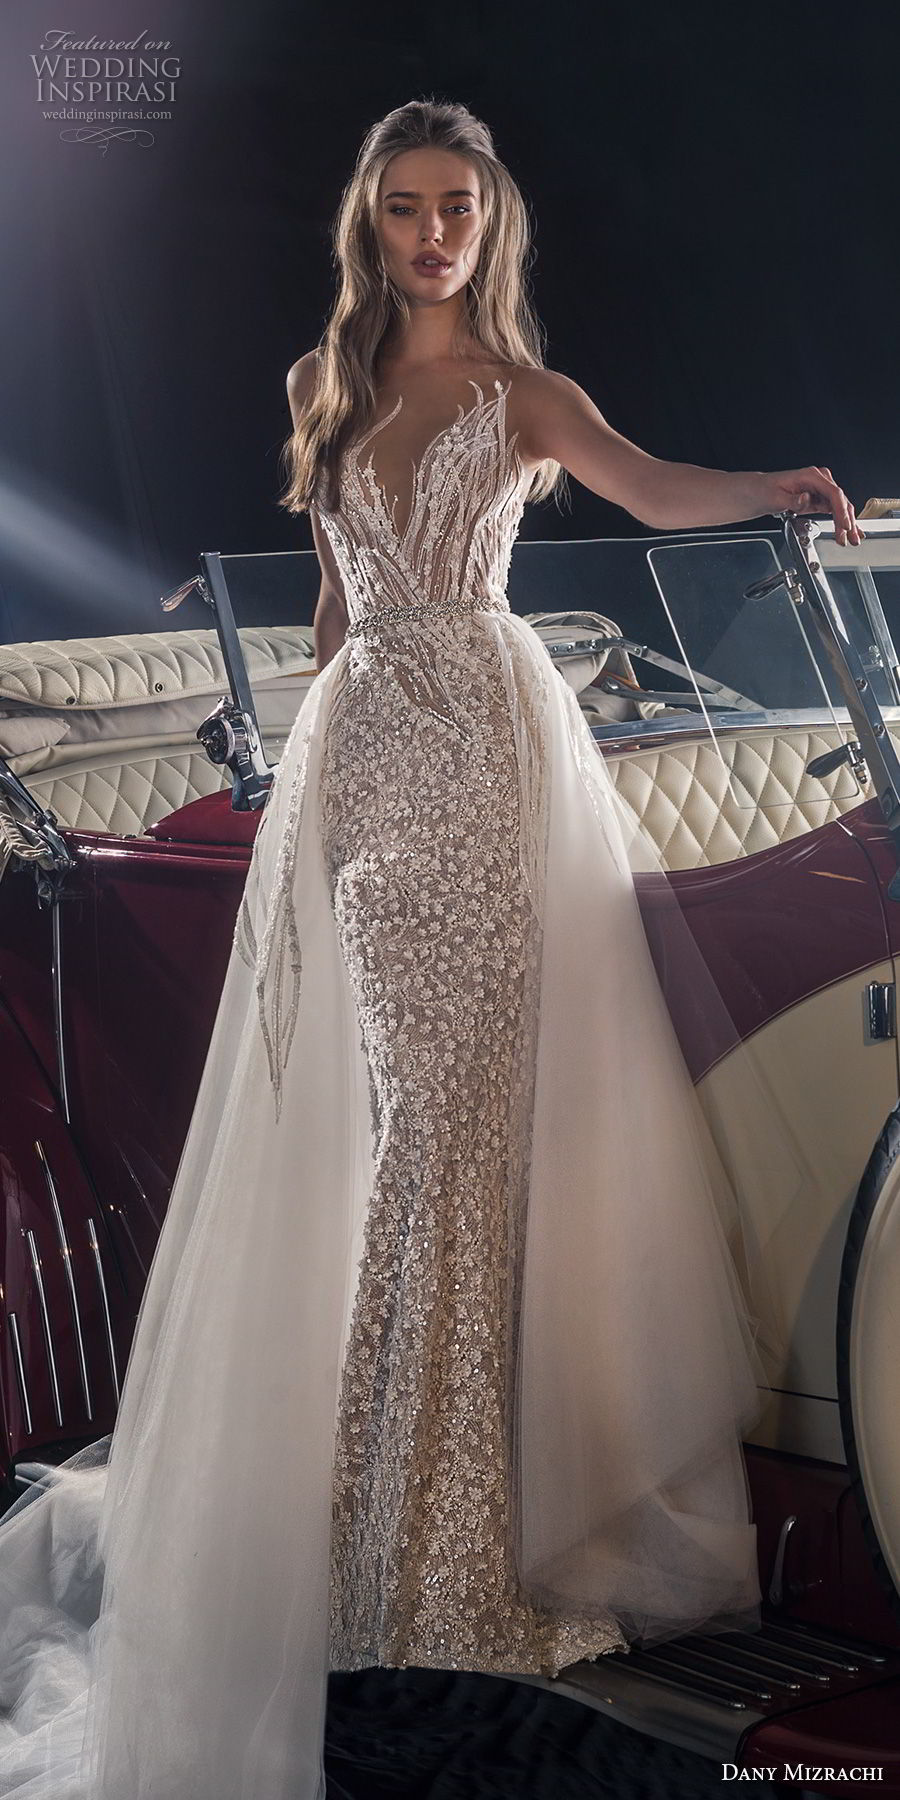 dany mizrachi fall 2018 bridal sleeveless deep sweetheart neckline full embellishment elegant glitzy glamorous fit and flare wedding dress a  line overskirt v back chapel train (16) mv